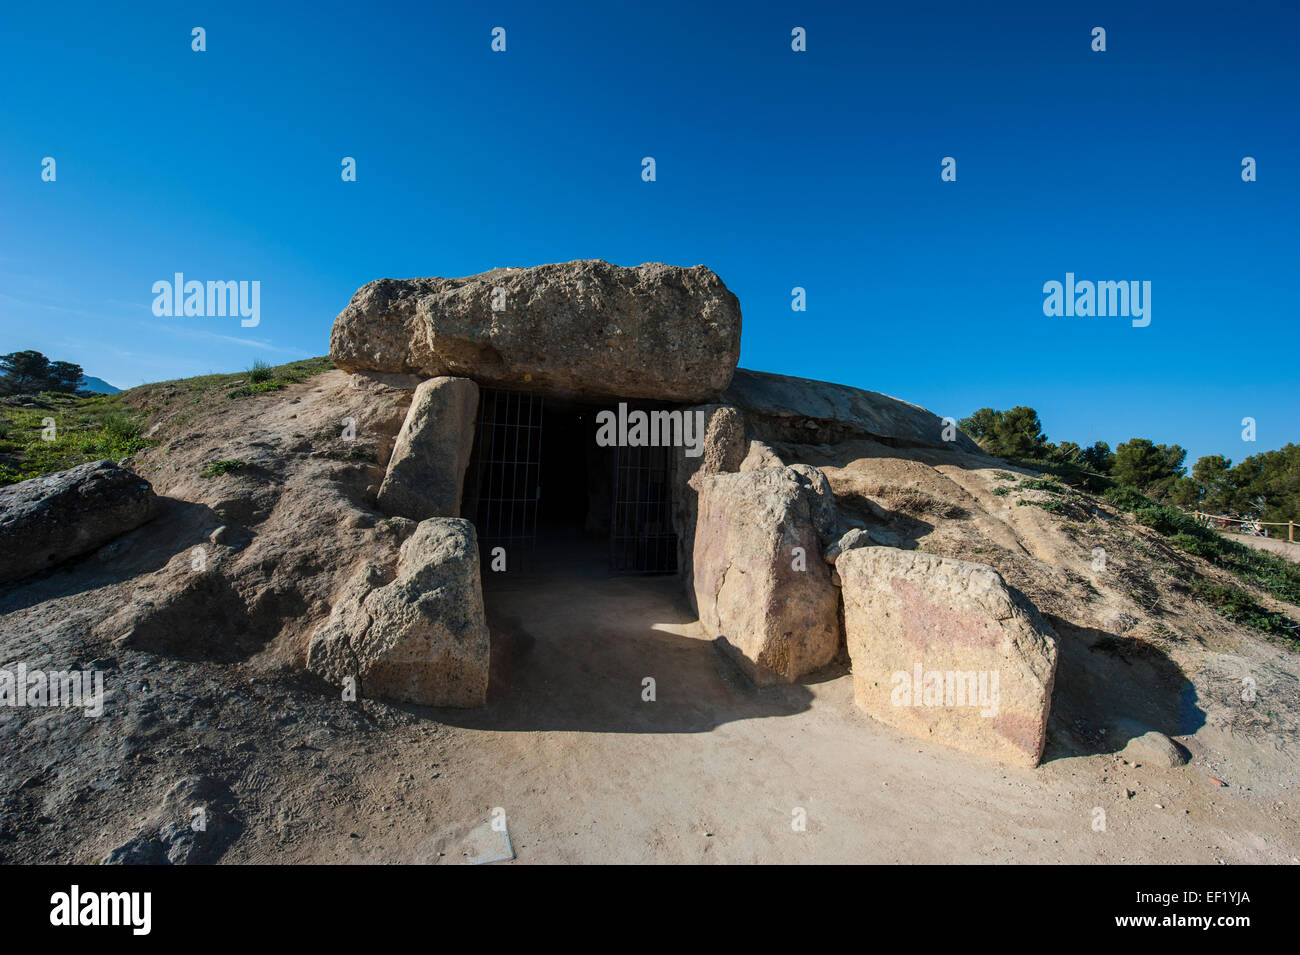 Dolmen of Menga, a megalithic burial mound located near Antequera, Málaga, Spain. - Stock Image